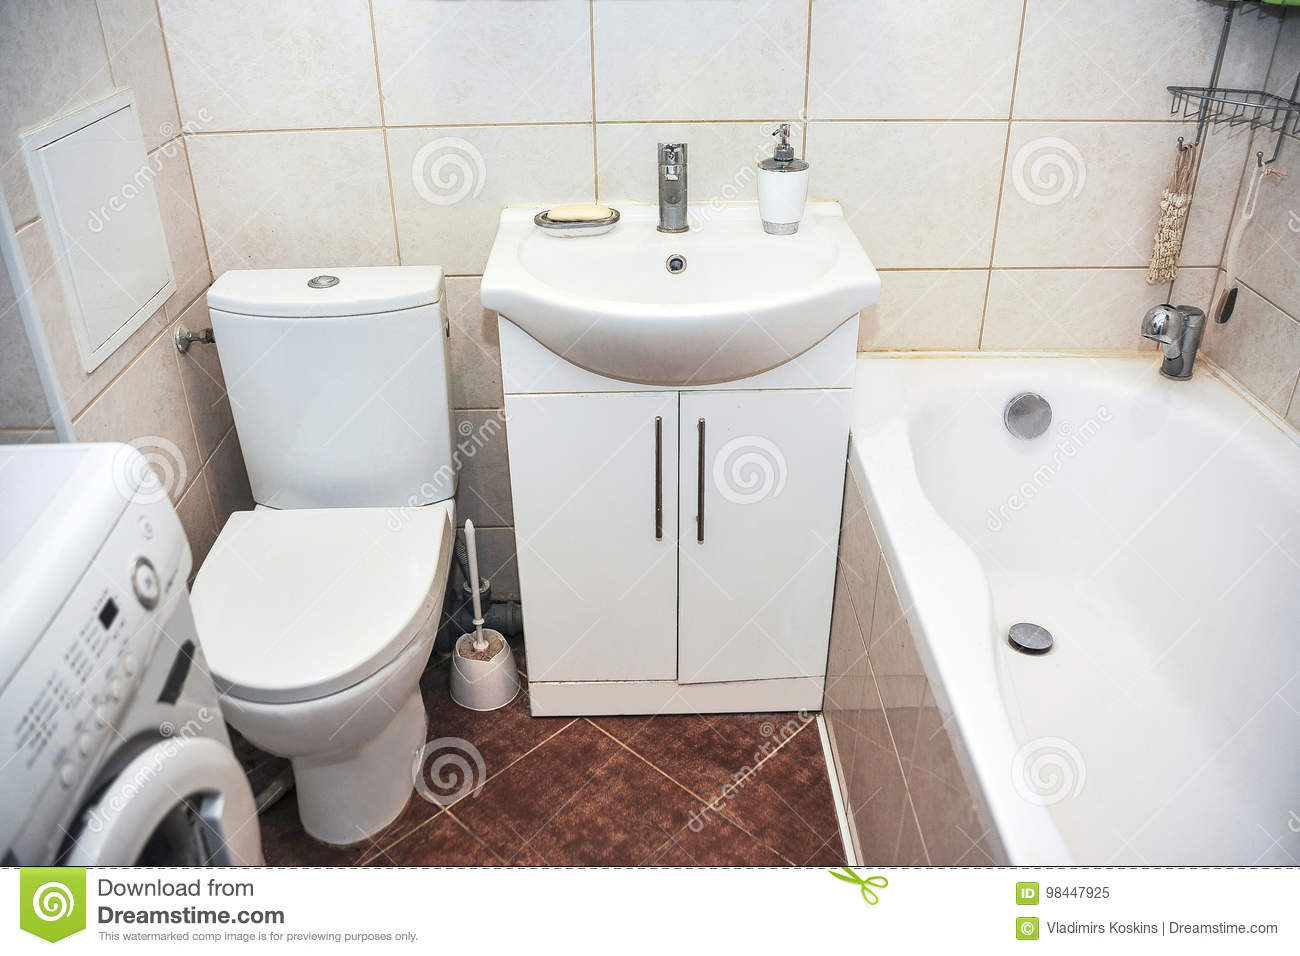 Bathroom In A Small Apartment Stock Image - Image of bottle, cabinet ...